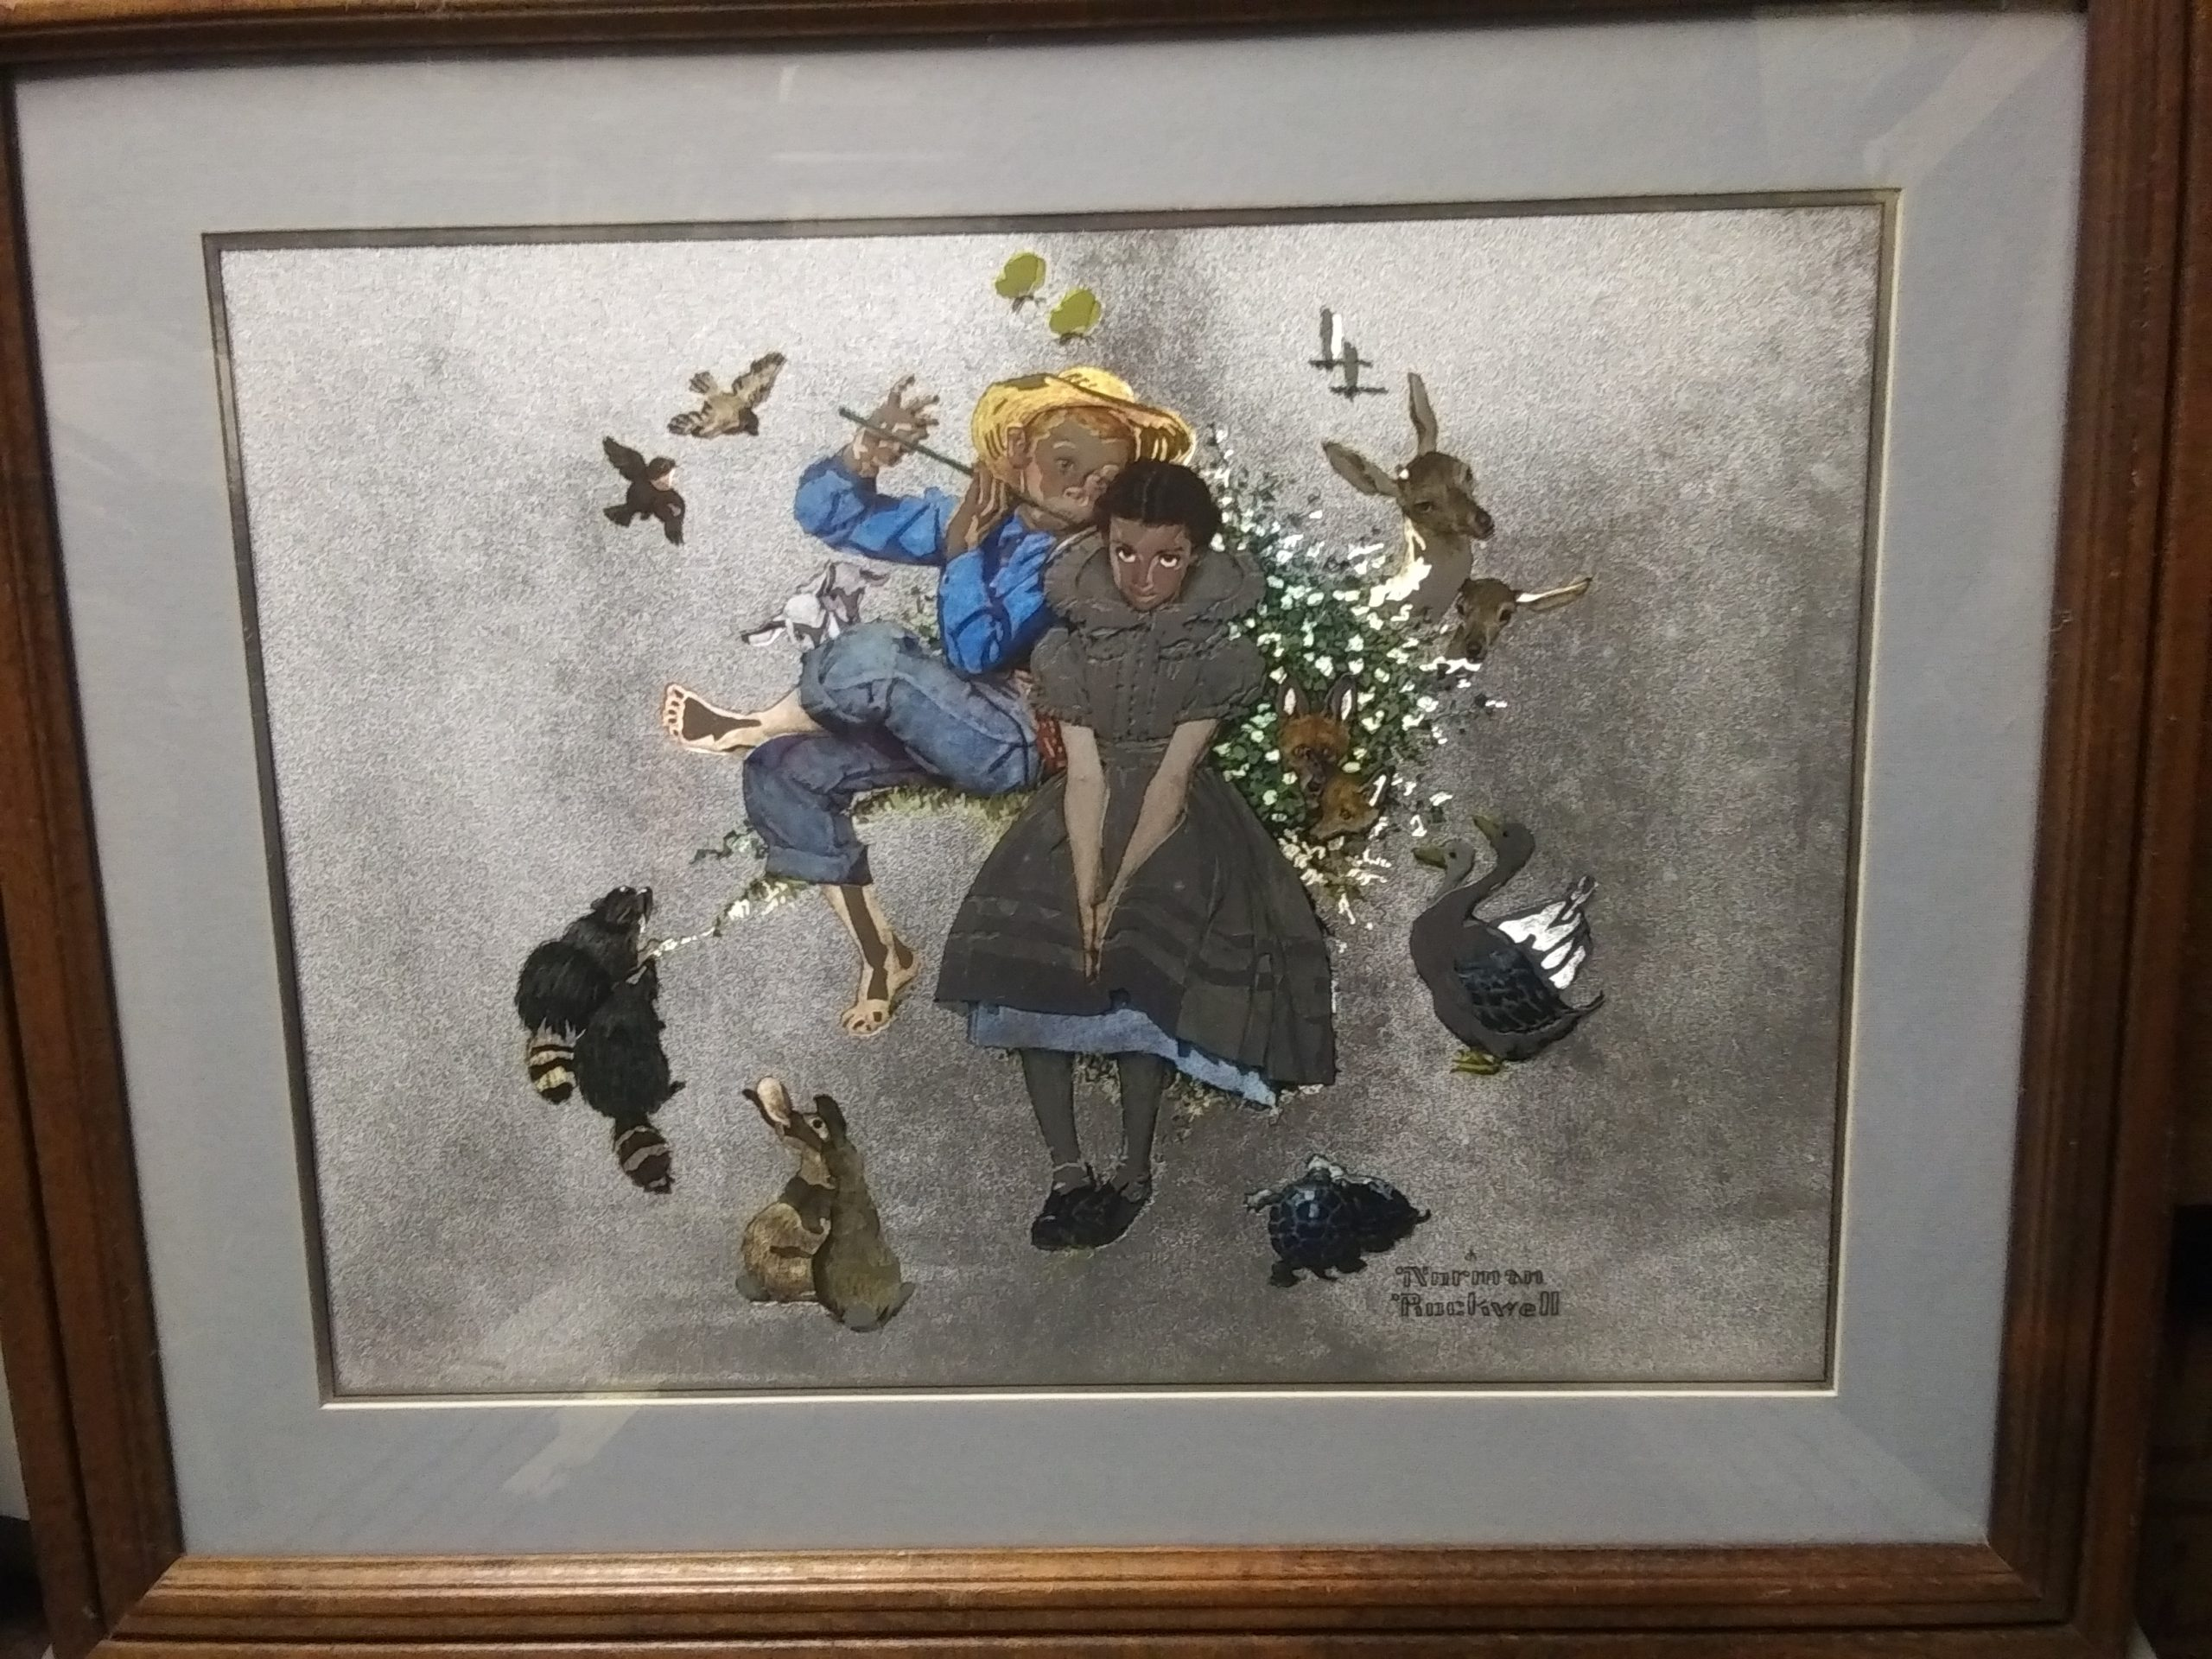 Norman Rockwell's Barefoot Boy Playing Flute: Framed Print